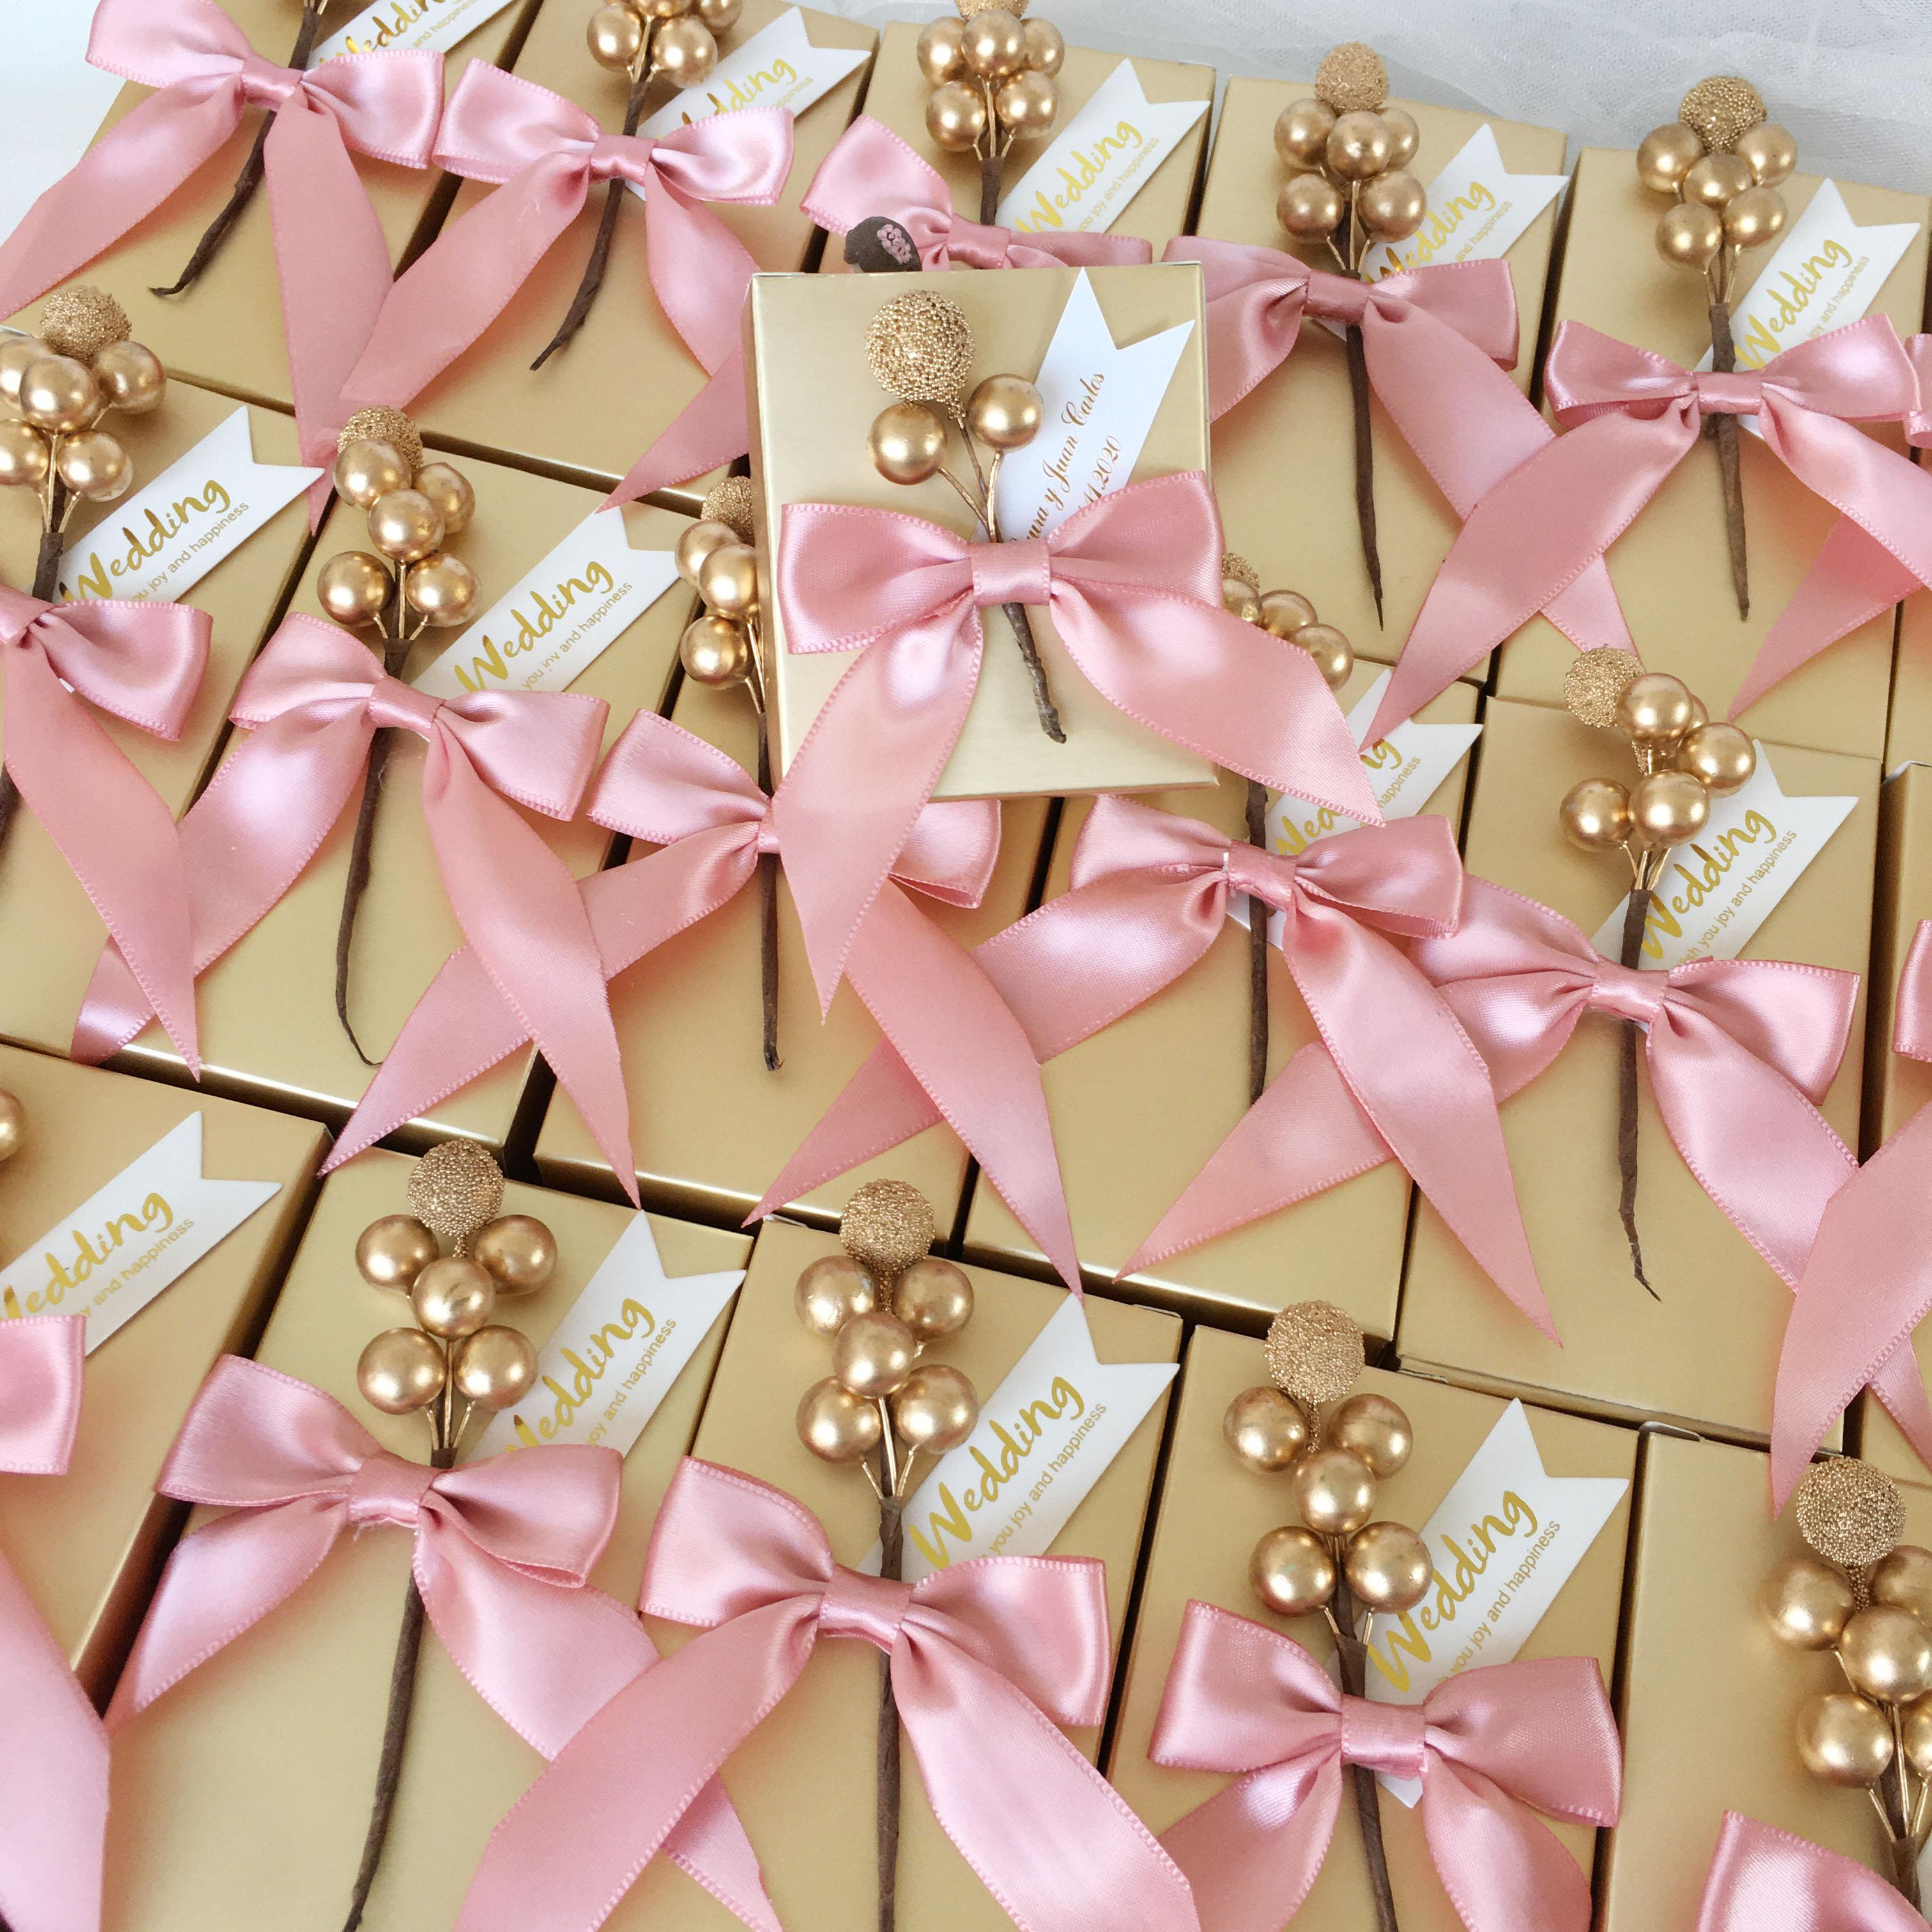 Custom gold candy box wedding baby shower birthday chocolate boxes party favors holder package for guests